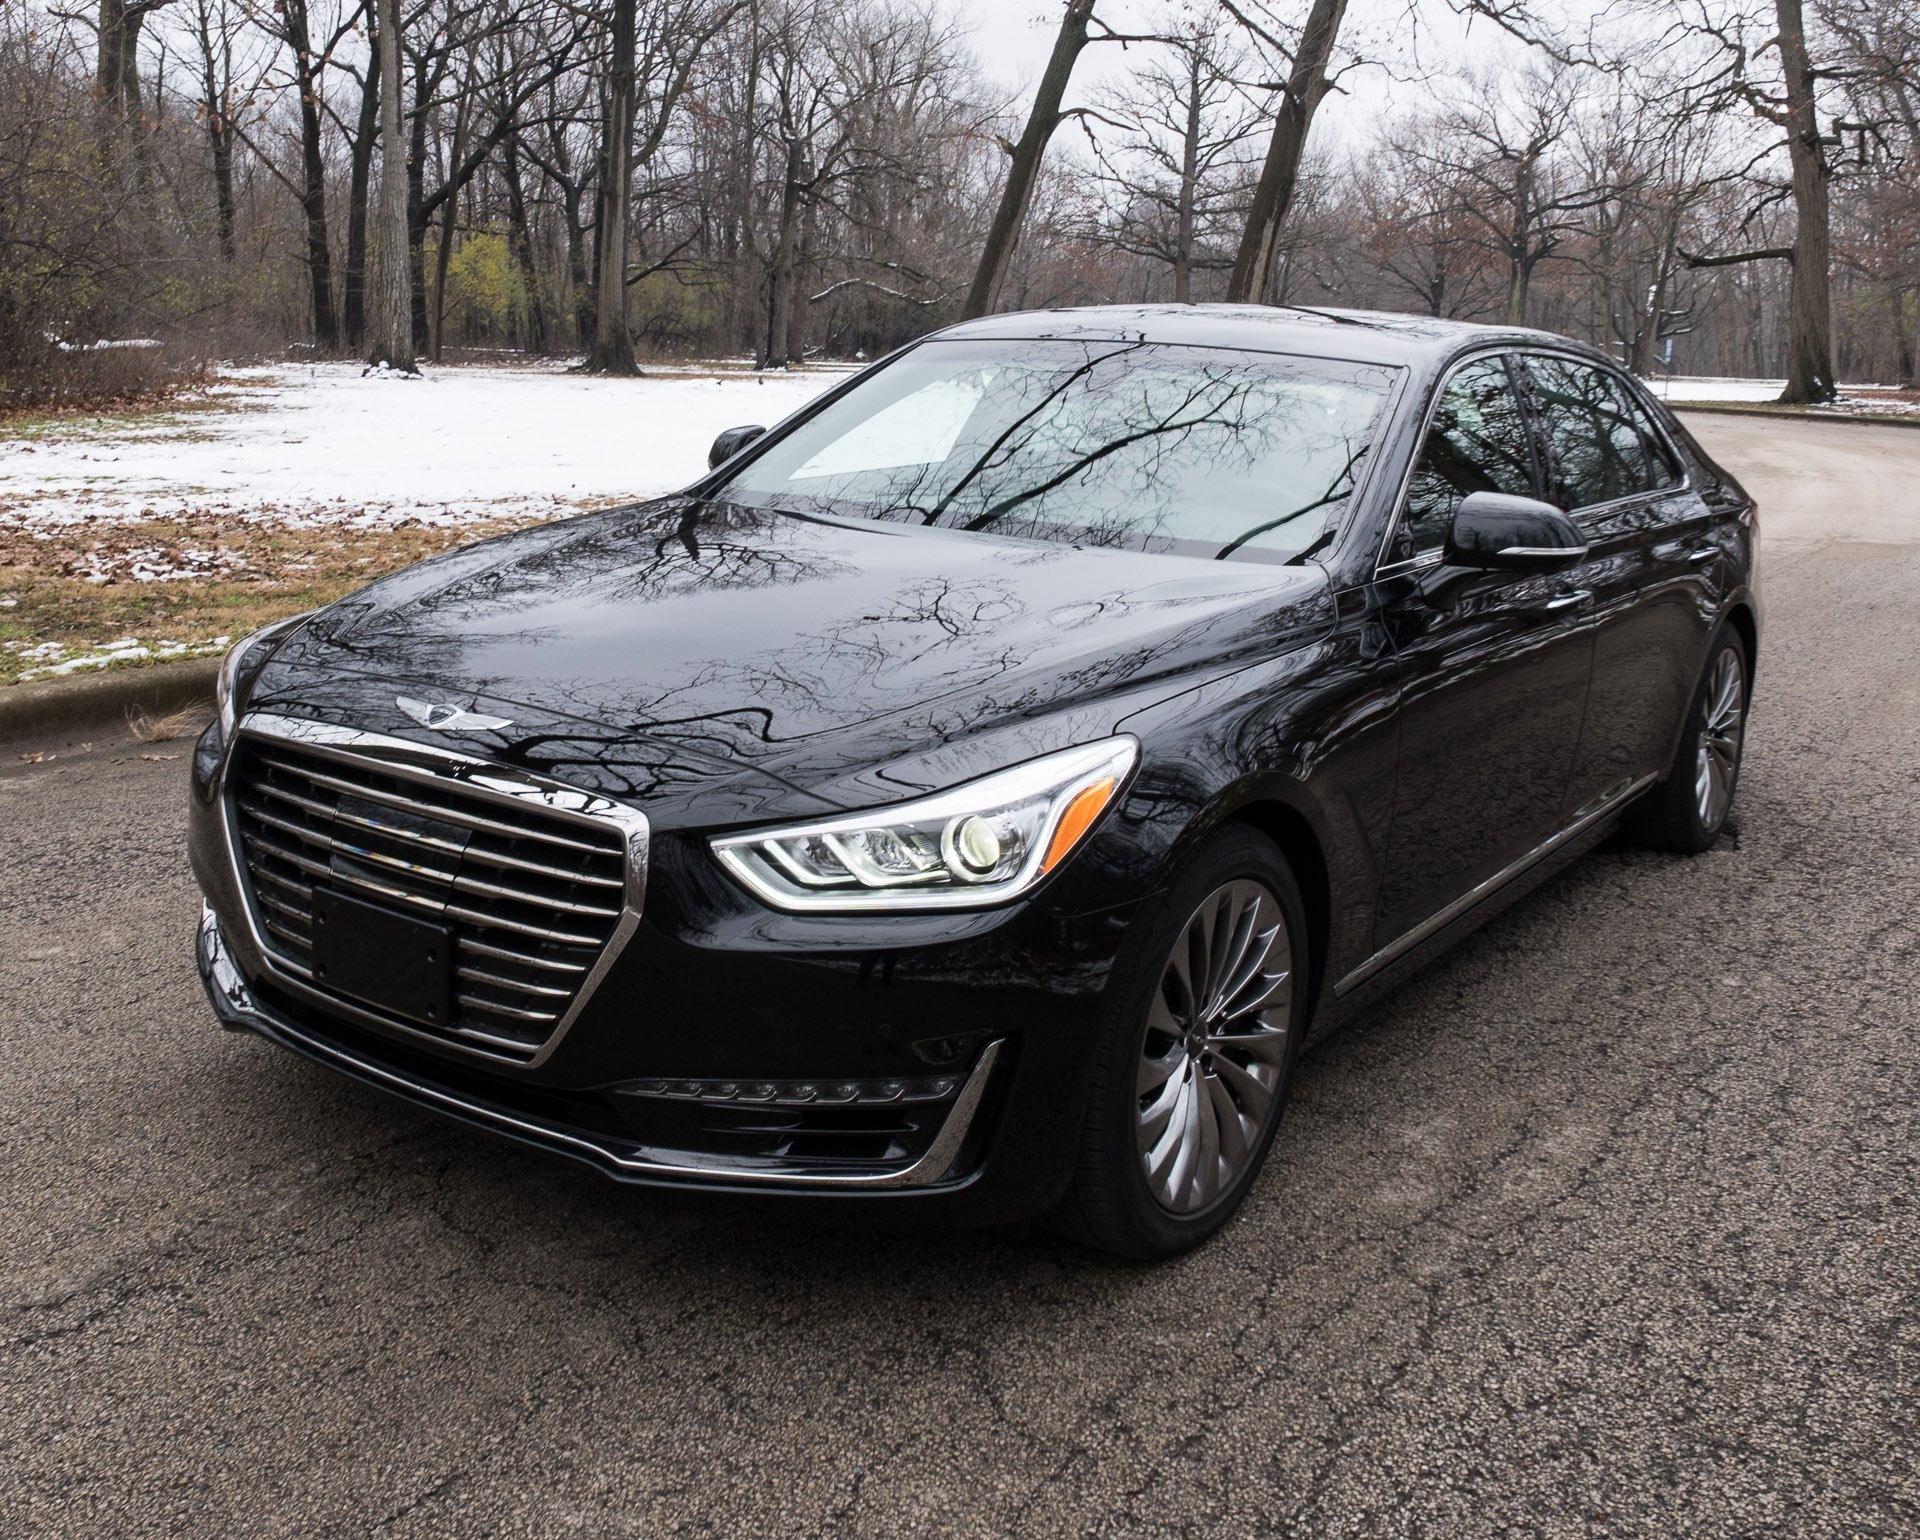 Review: 2017 Genesis G90 5.0 Ultimate - 95 Octane